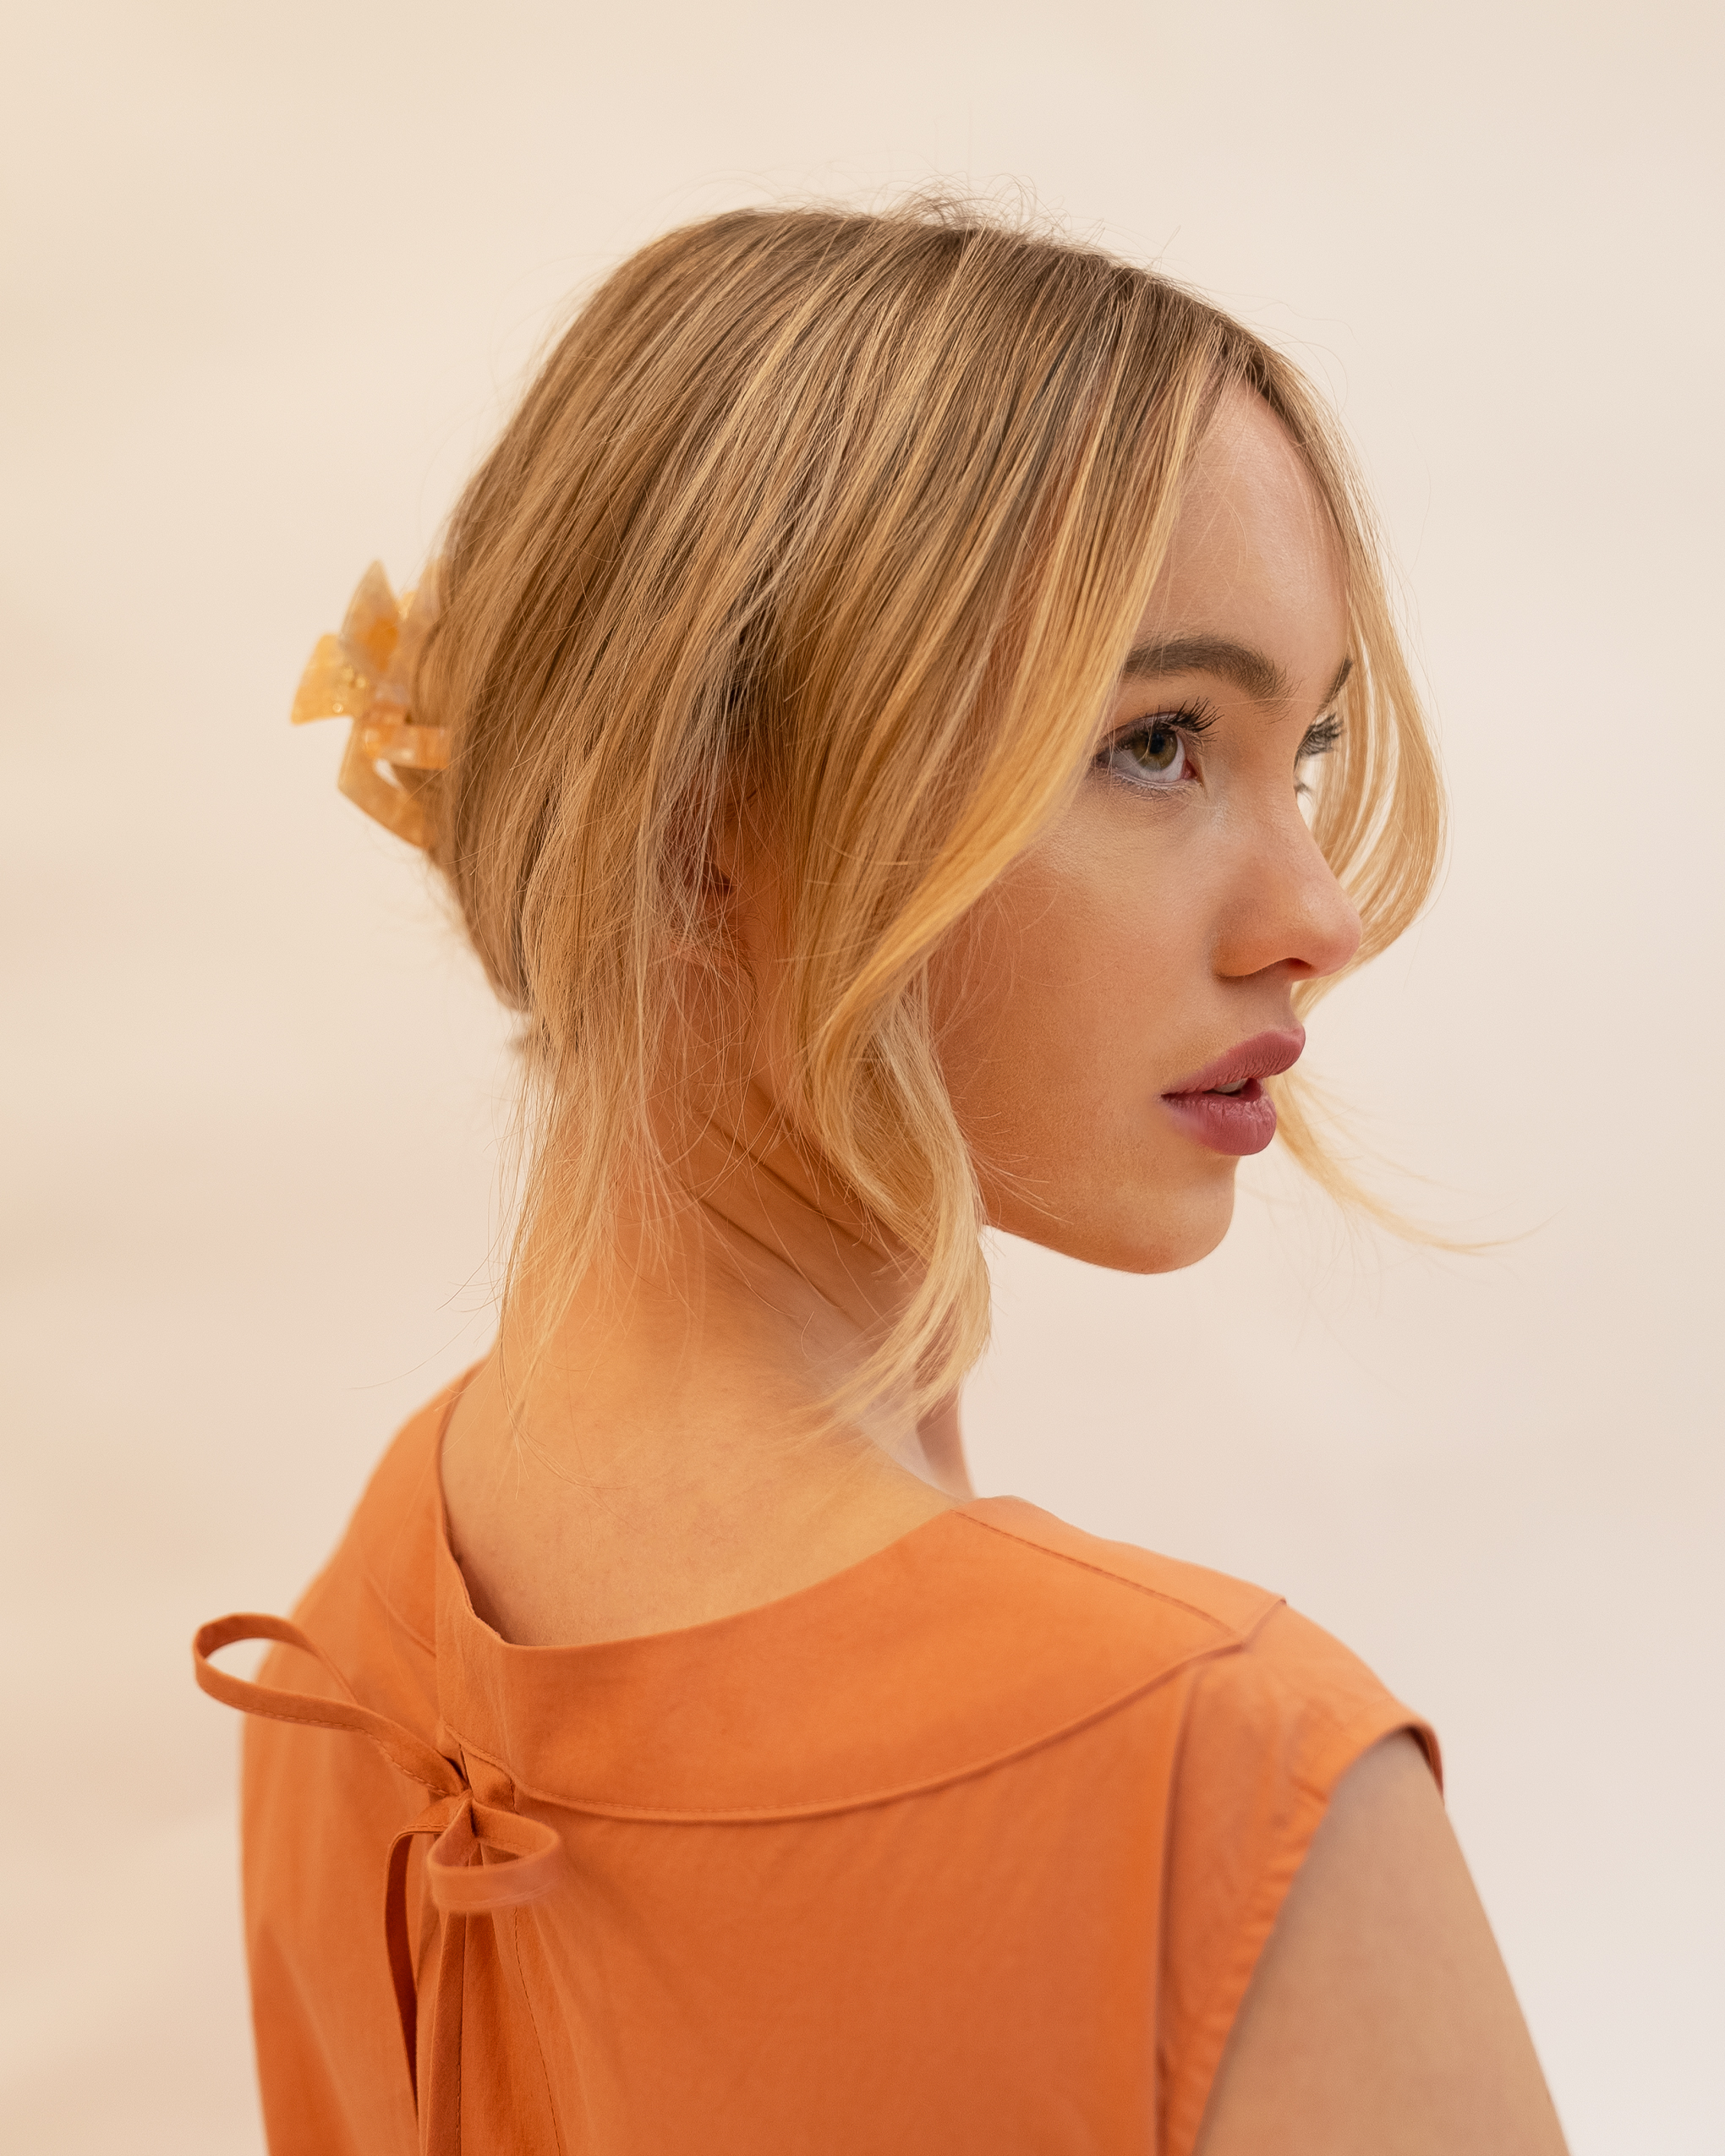 Model wearing Emin + Paul coral opal square hair claw.